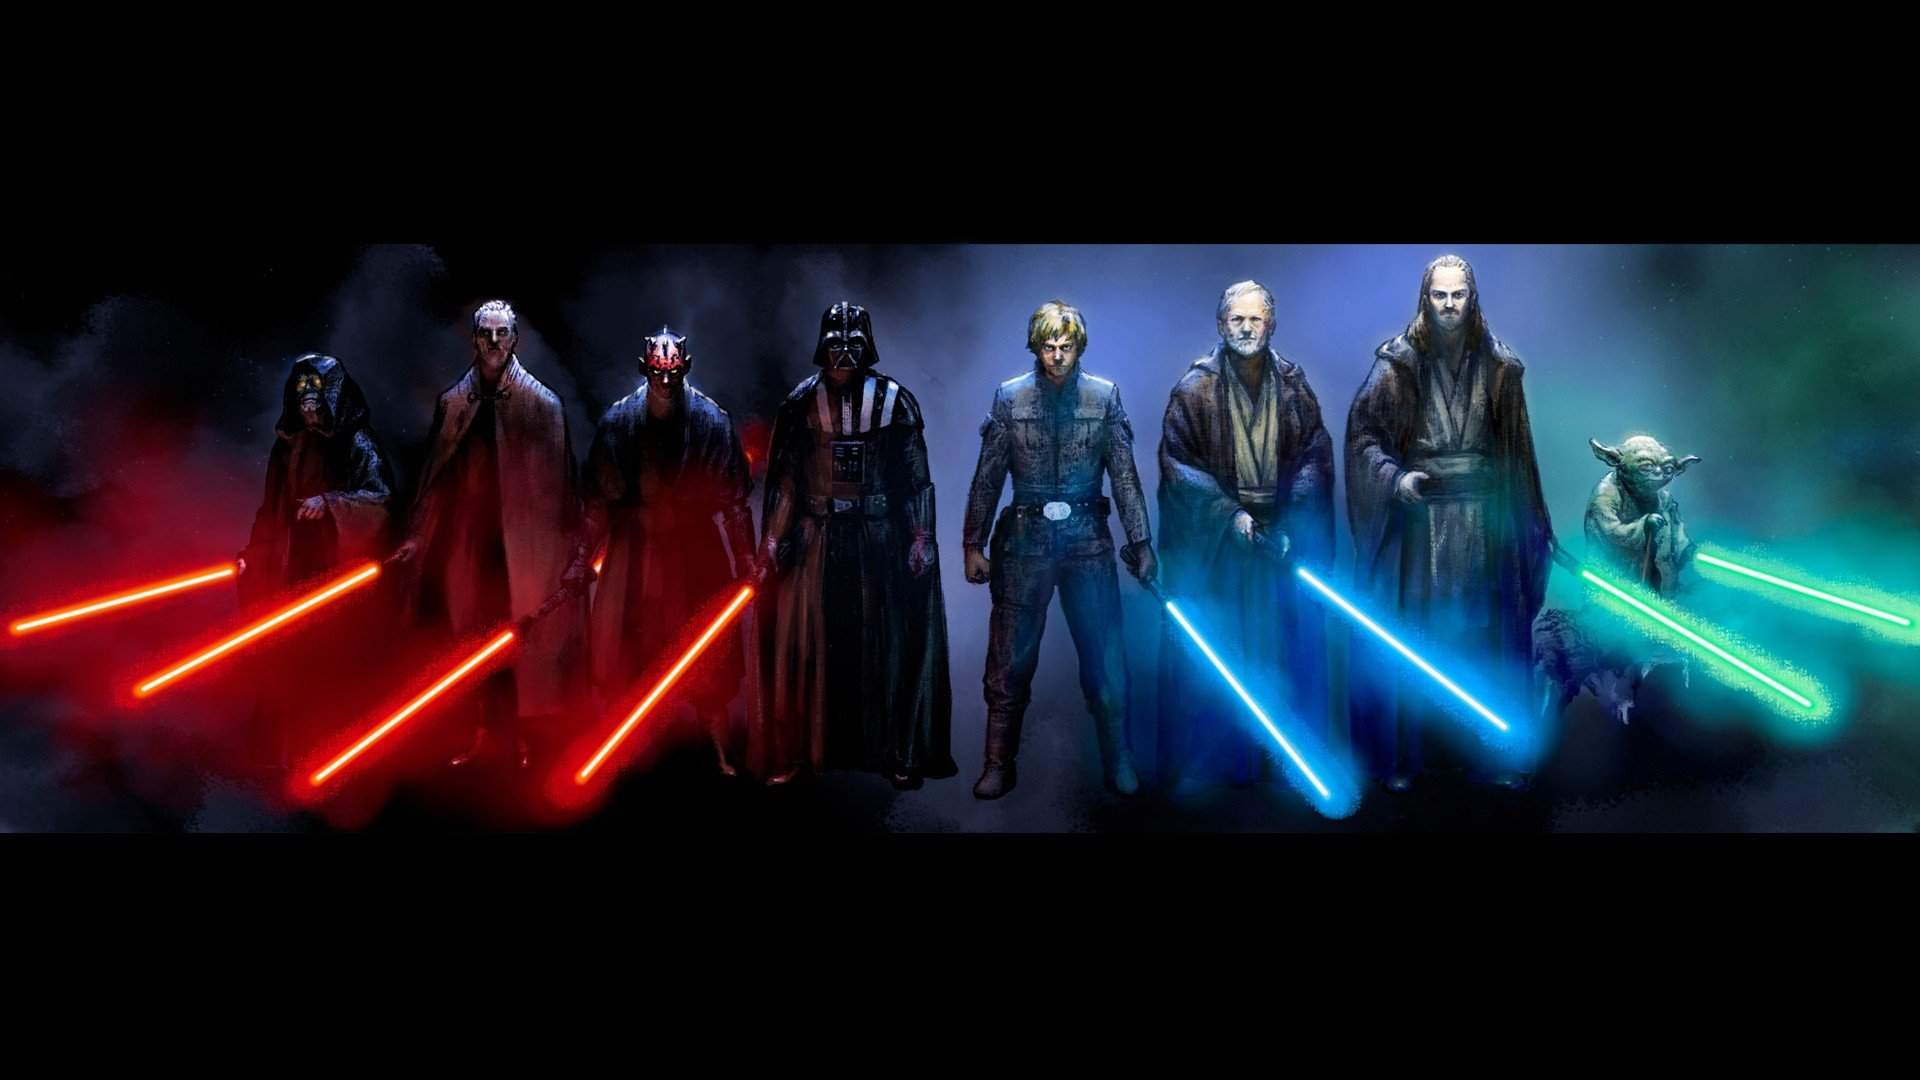 Free Download Star Wars Lightsaber Characters 1920x1080 Full Hd 169 Fond D 1920x1080 For Your Desktop Mobile Tablet Explore 49 Uhd Star Wars Wallpaper Hd Star Wars Wallpapers 1080p